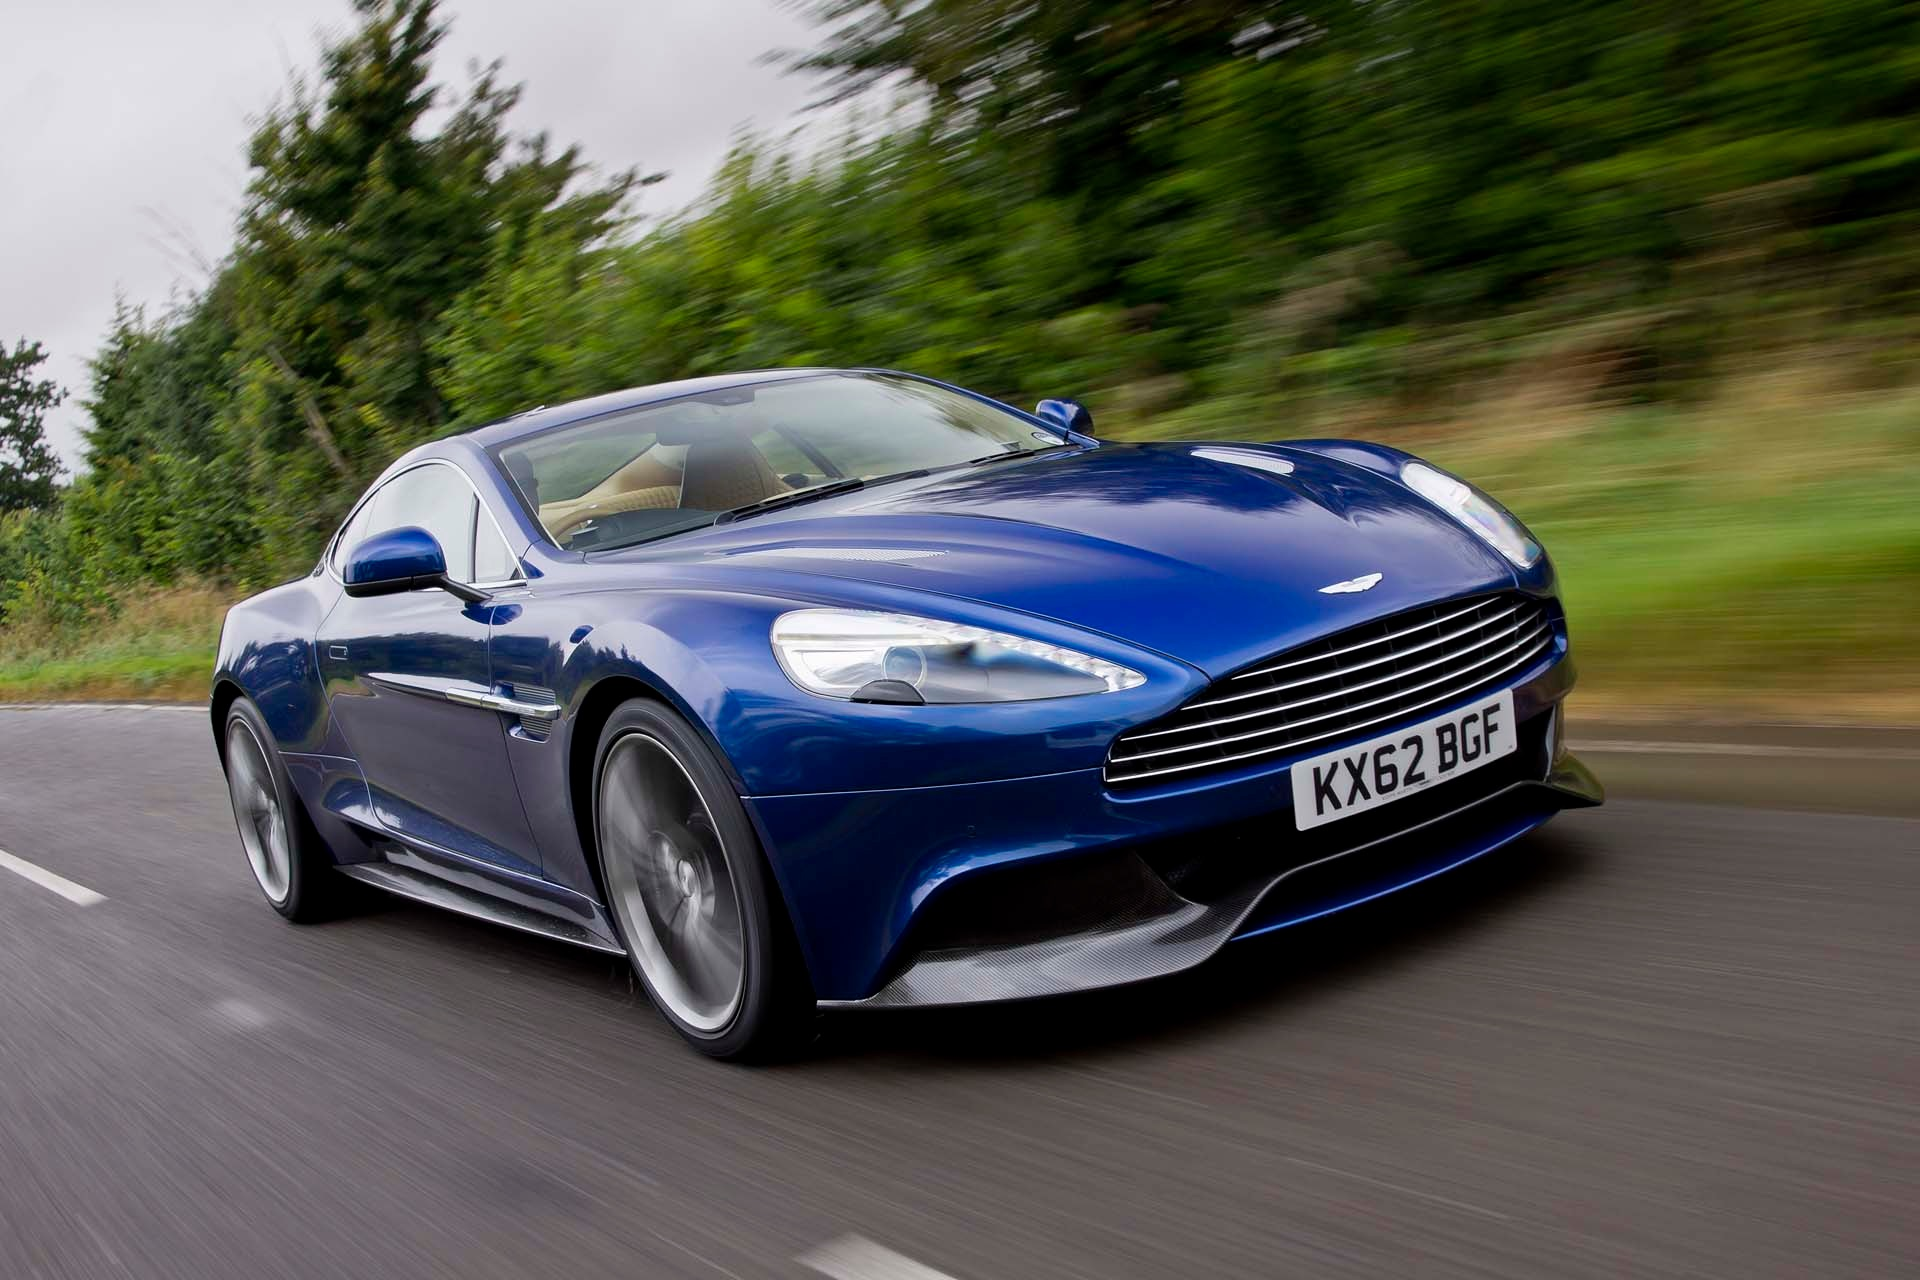 2013 aston martin db9 with 2017 Aston Martin Vanquish S on 2016 likewise Quez98 likewise 2013 Aston Martin Db9 Review And Pictures Pictures also Honda Nsx further Gallery Detail.